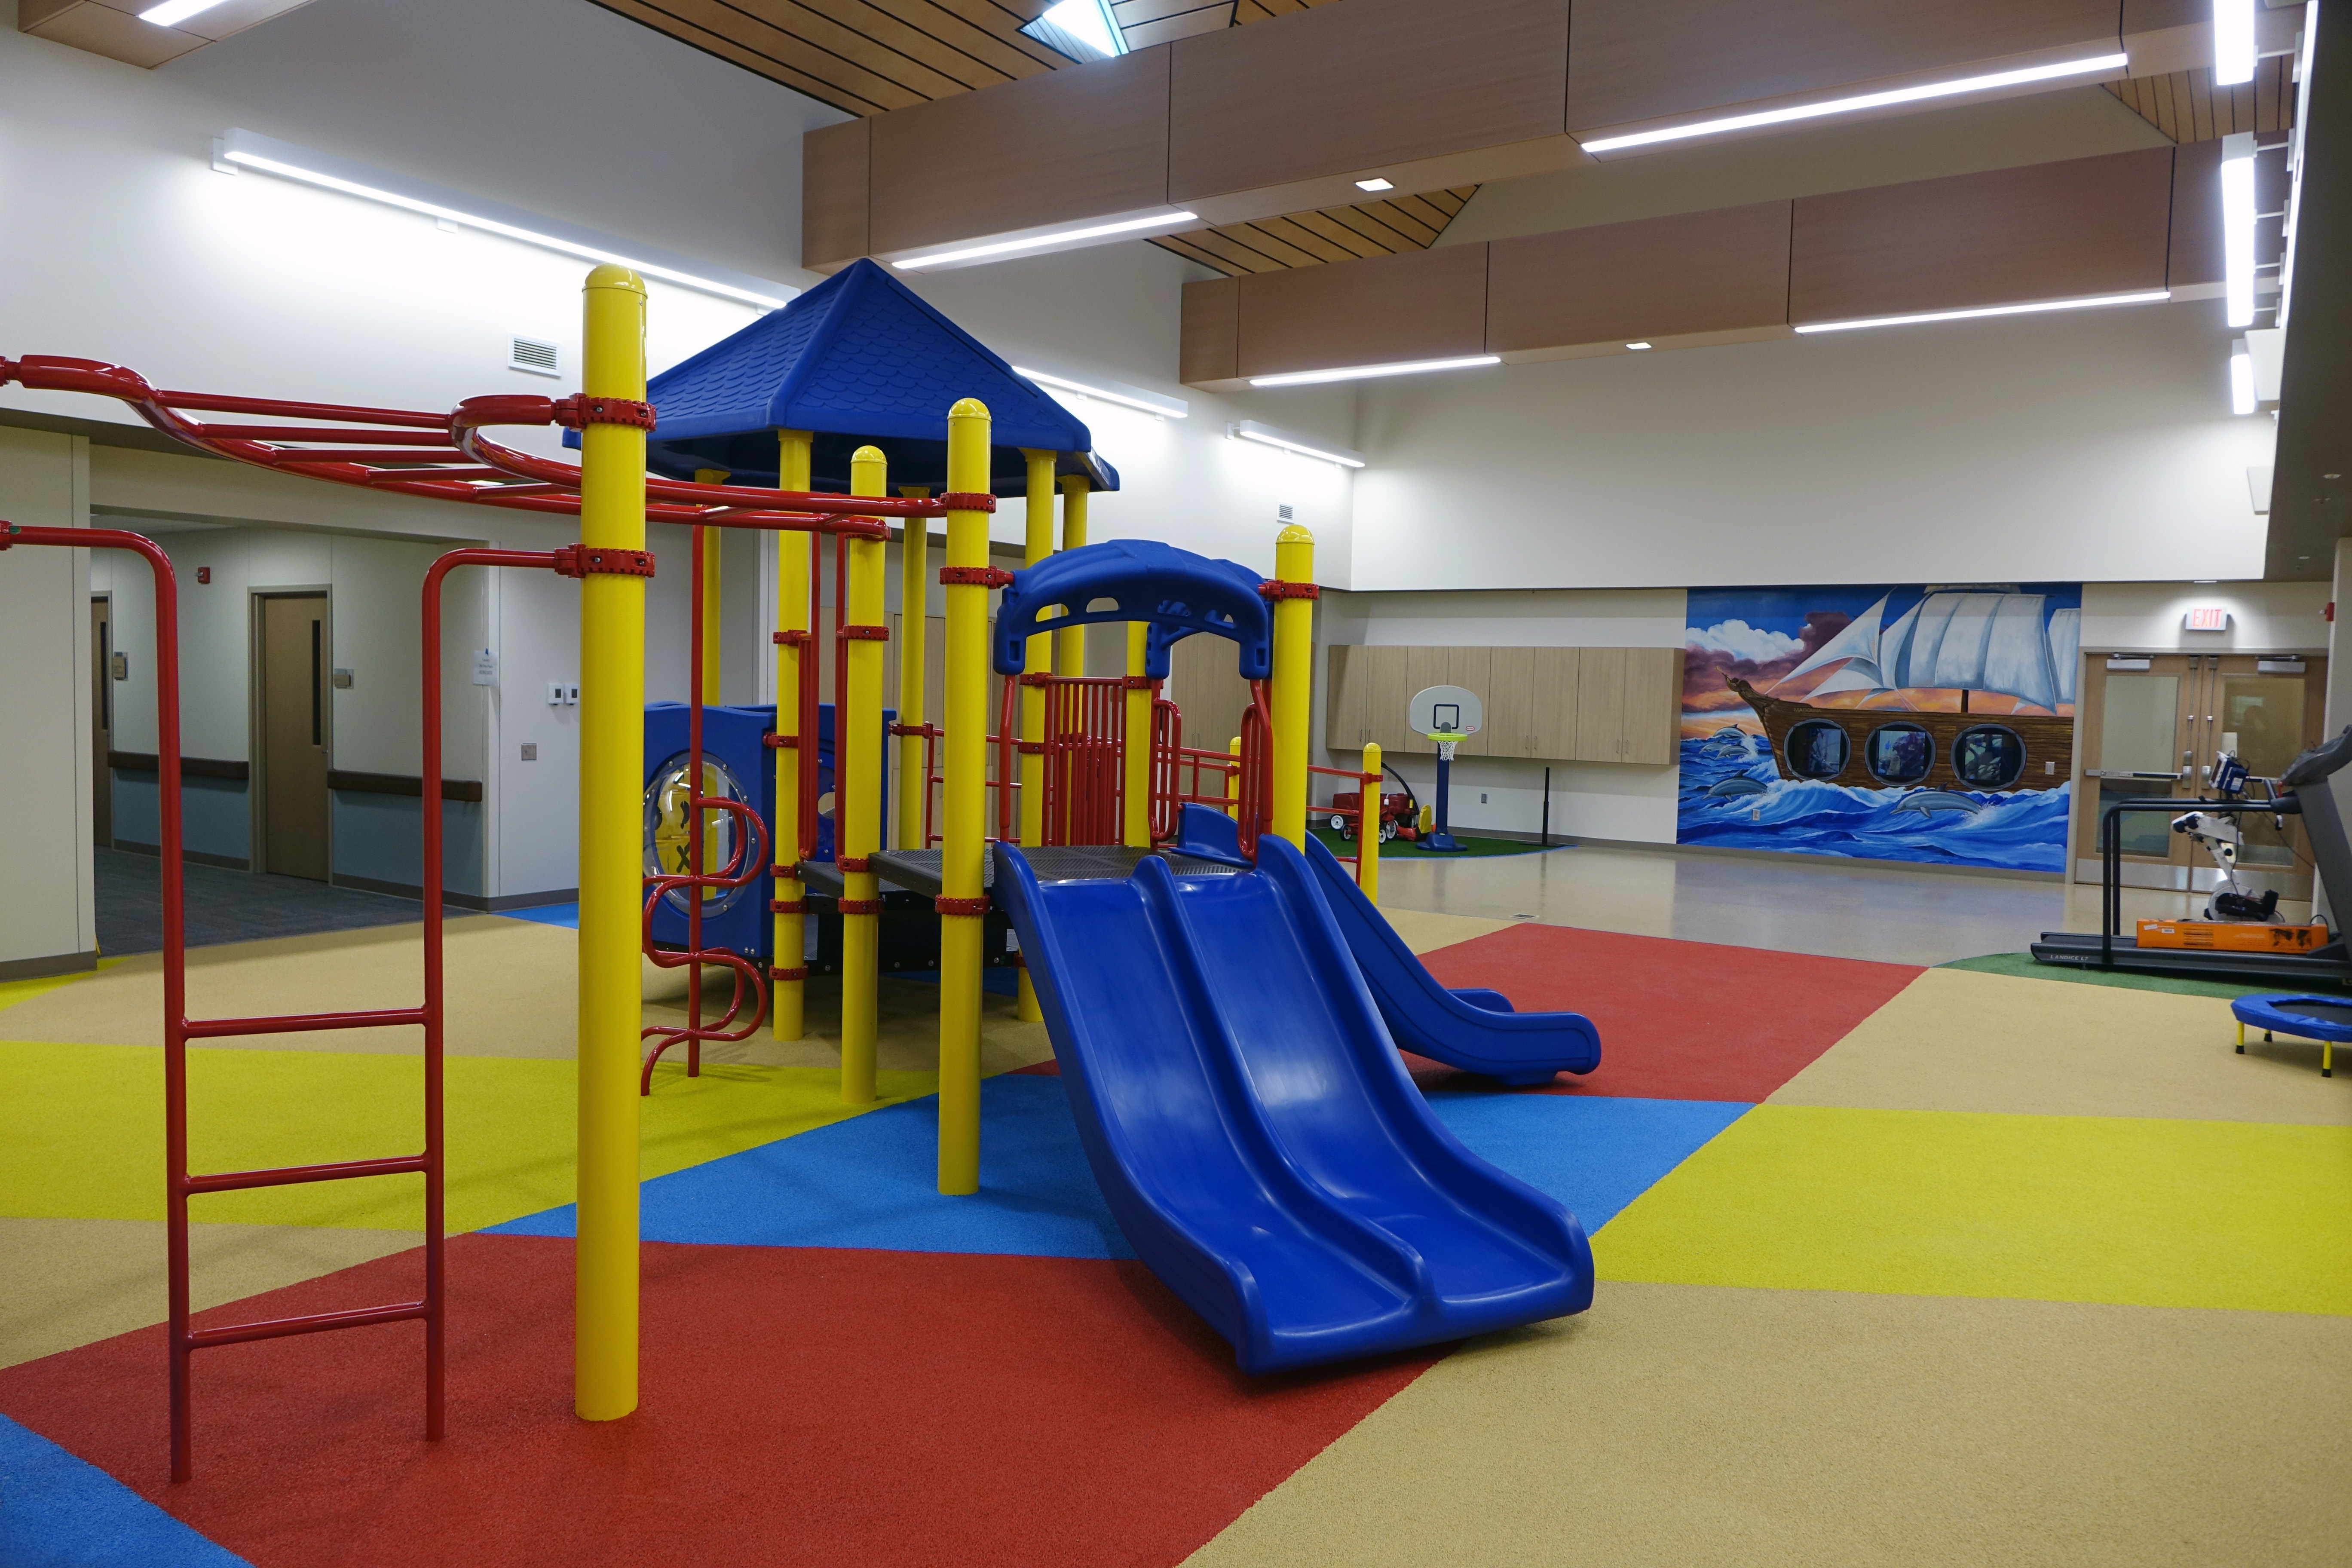 Equipment pediatric physical therapy - The Indoor Playground And Physical Therapy Area In The Secure Pediatric Unit